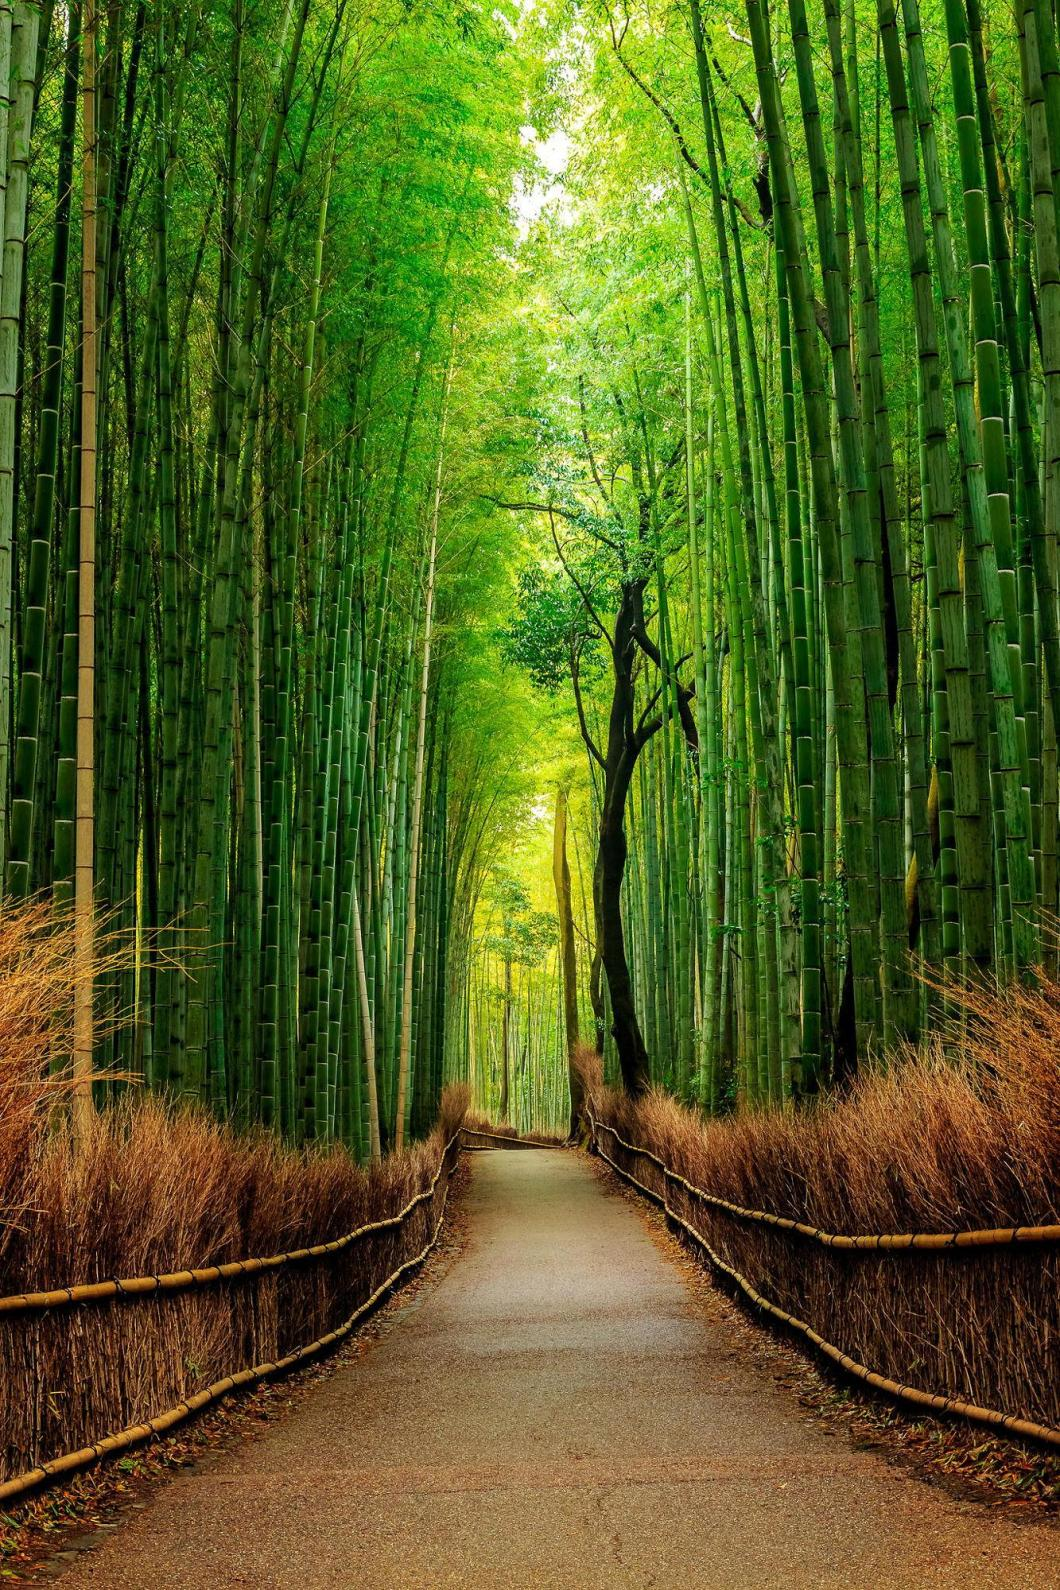 Hd Wallpaper Bamboo Forest Bestpicture1org